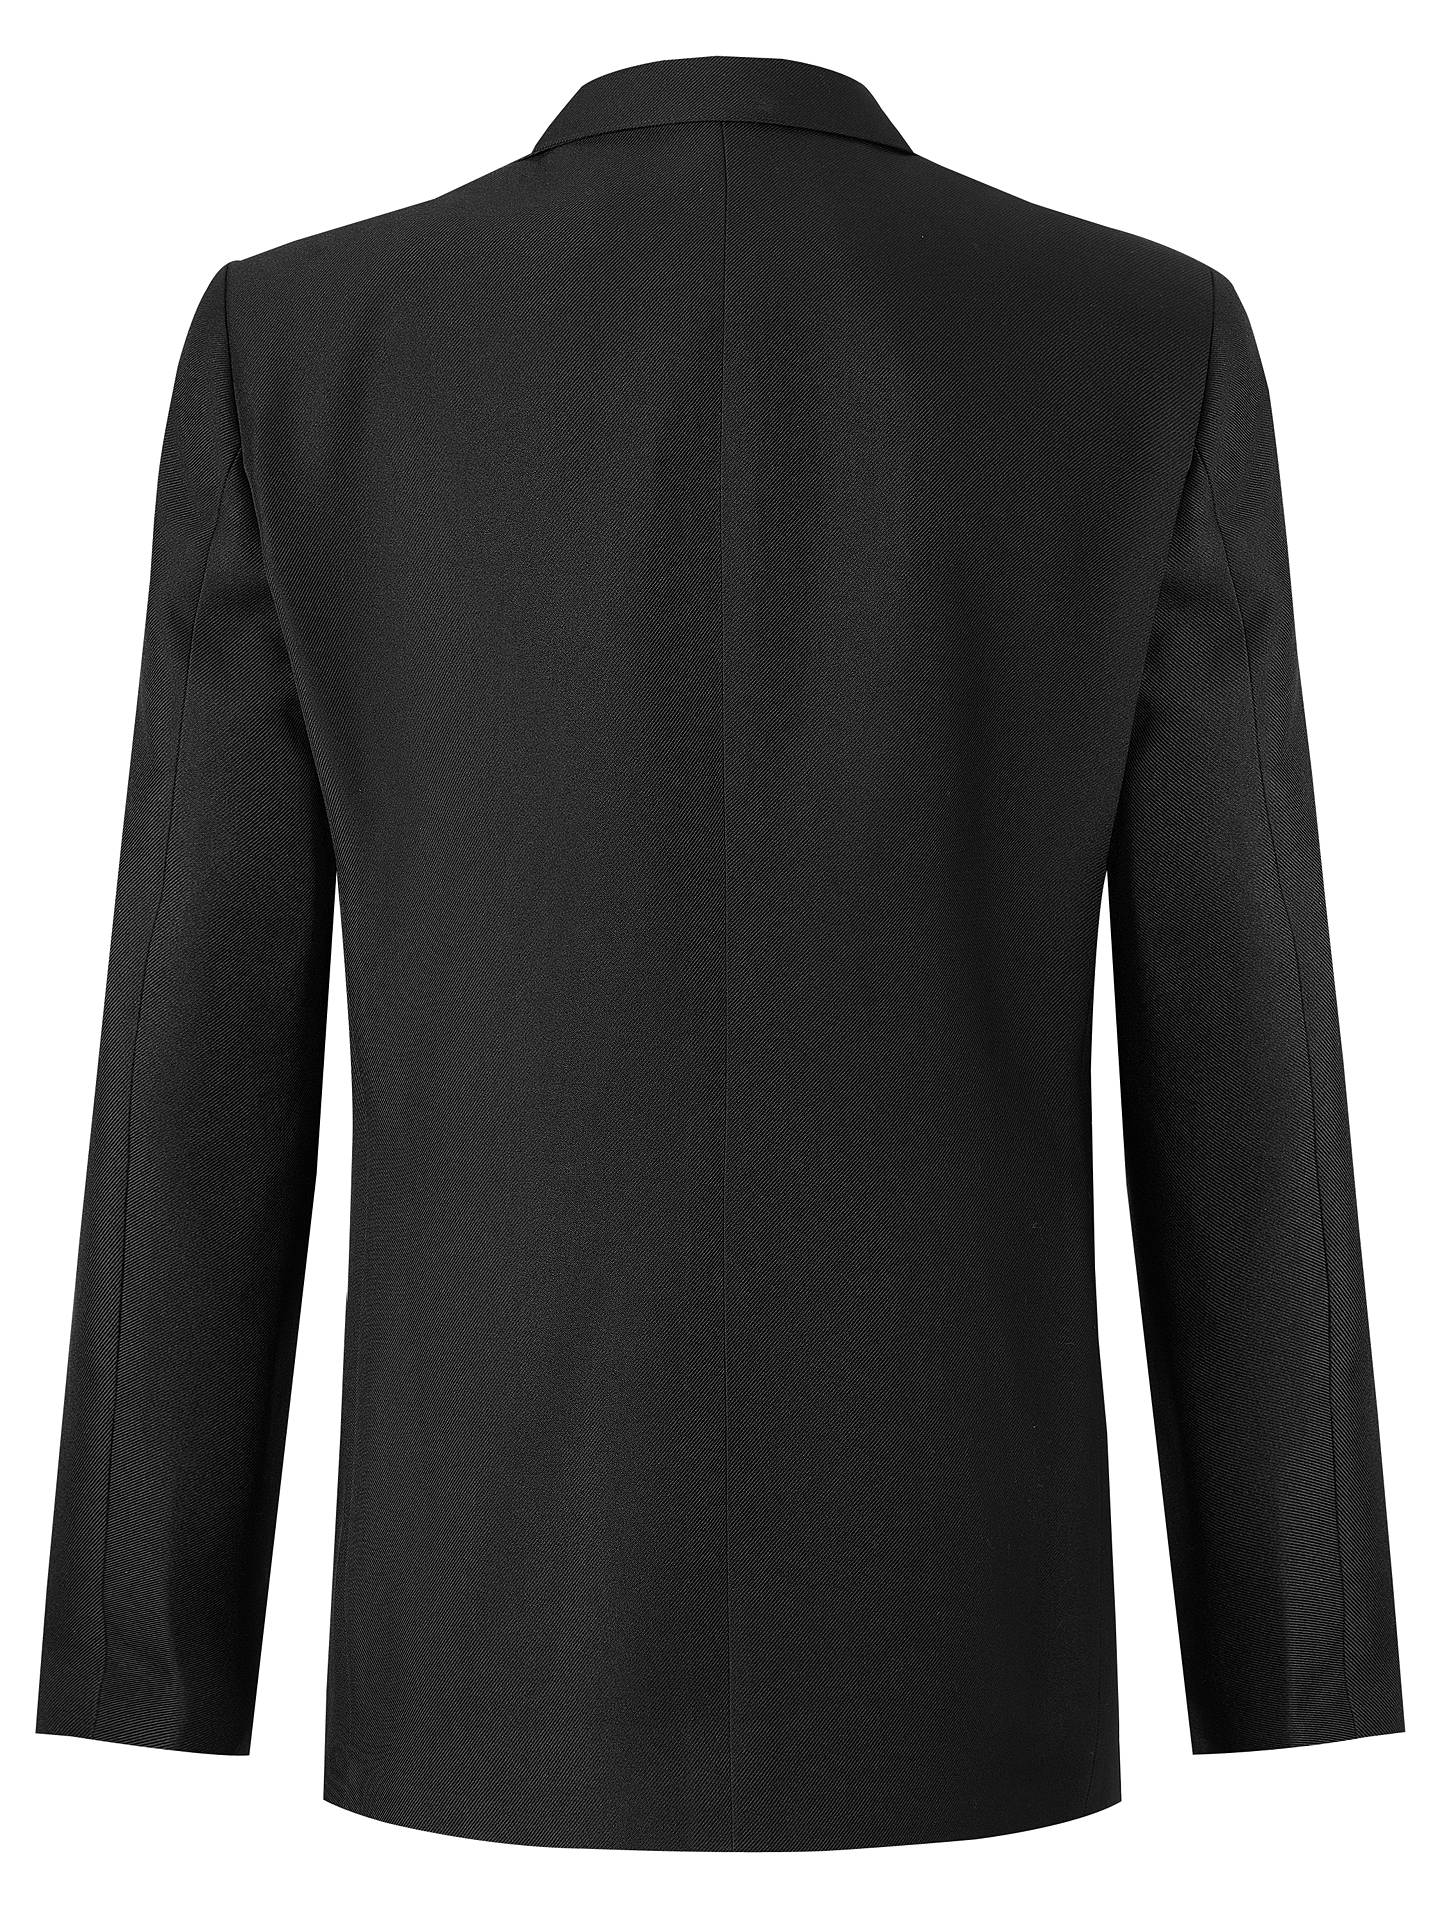 "Buy John Lewis & Partners Girls' School Eco Blazer, Black, Chest 22"" / 3-4 years Online at johnlewis.com"